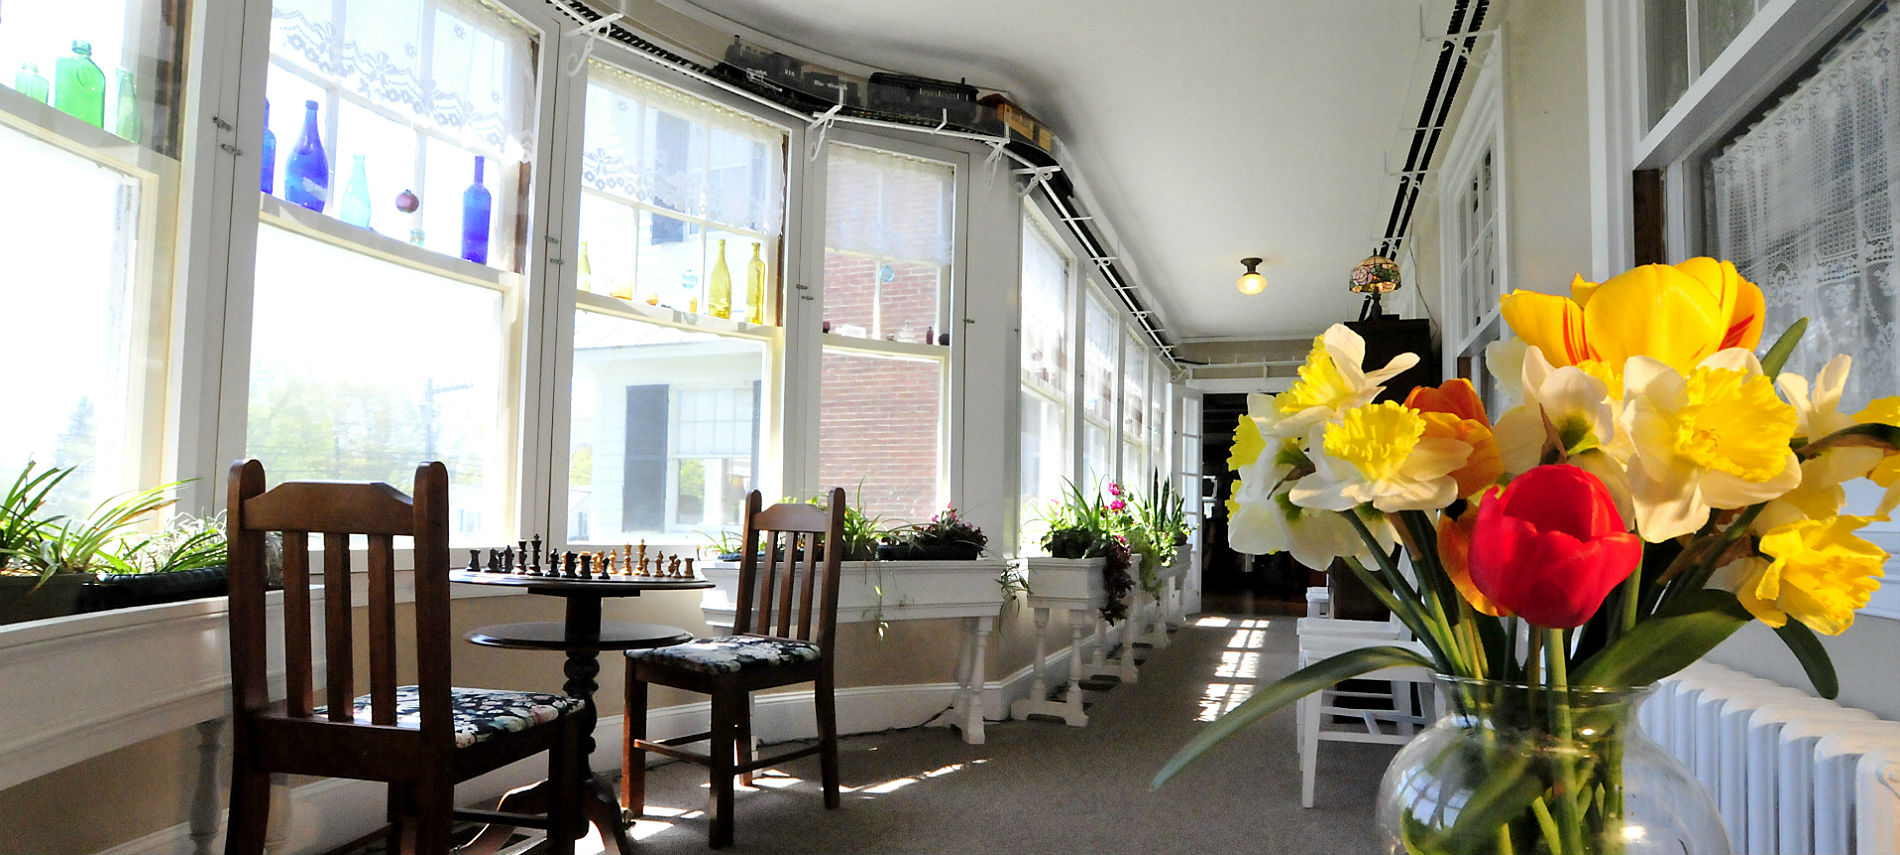 Enclosed porch with mant large windows and a small table and chairs.